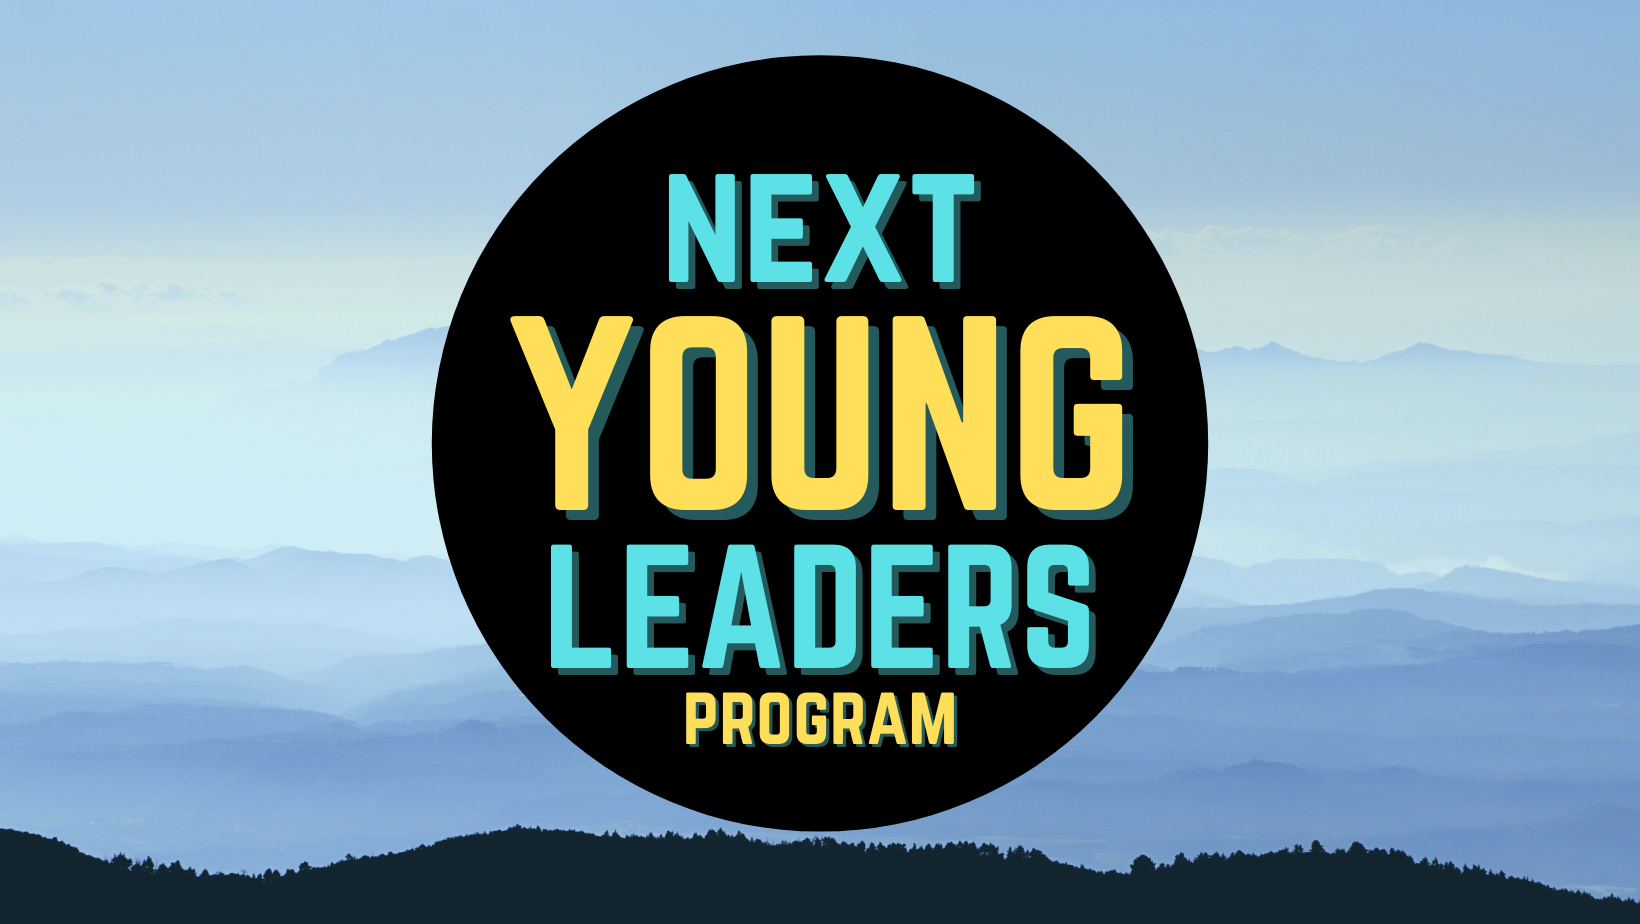 Next Young Leaders Program